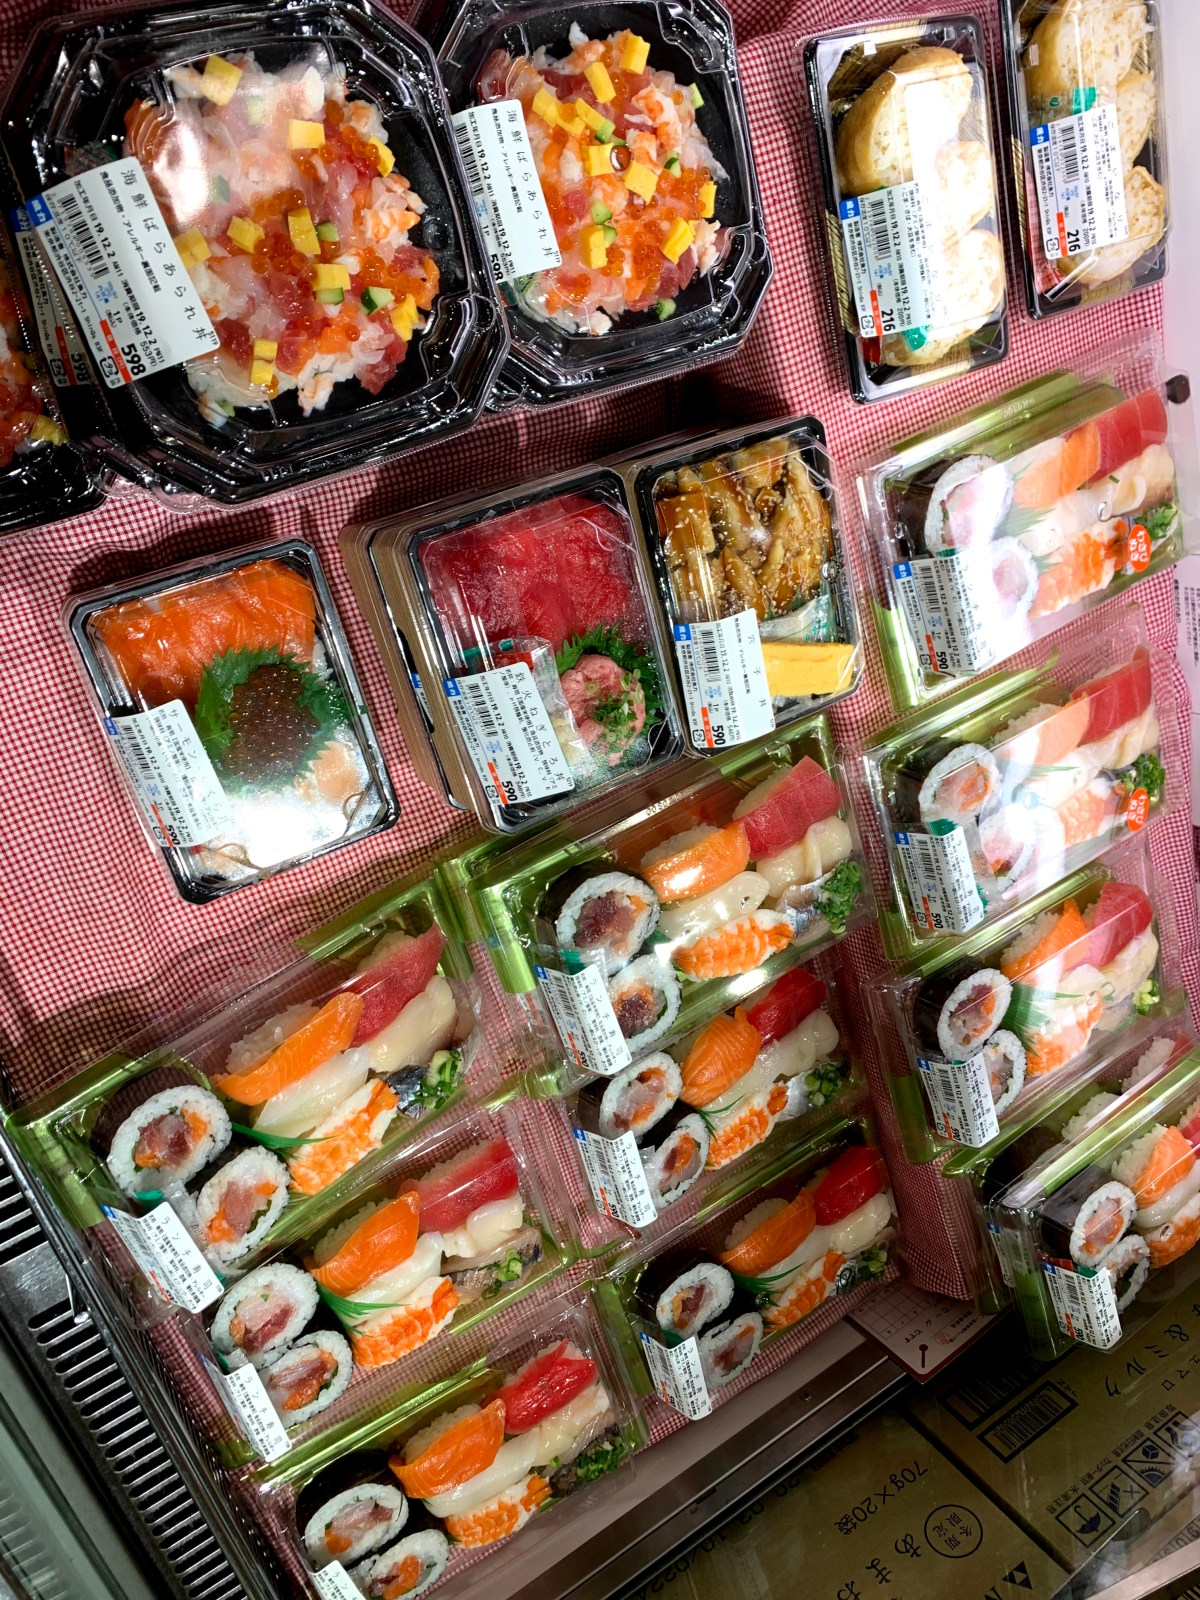 What do you think favorite dishes are among Japanese?